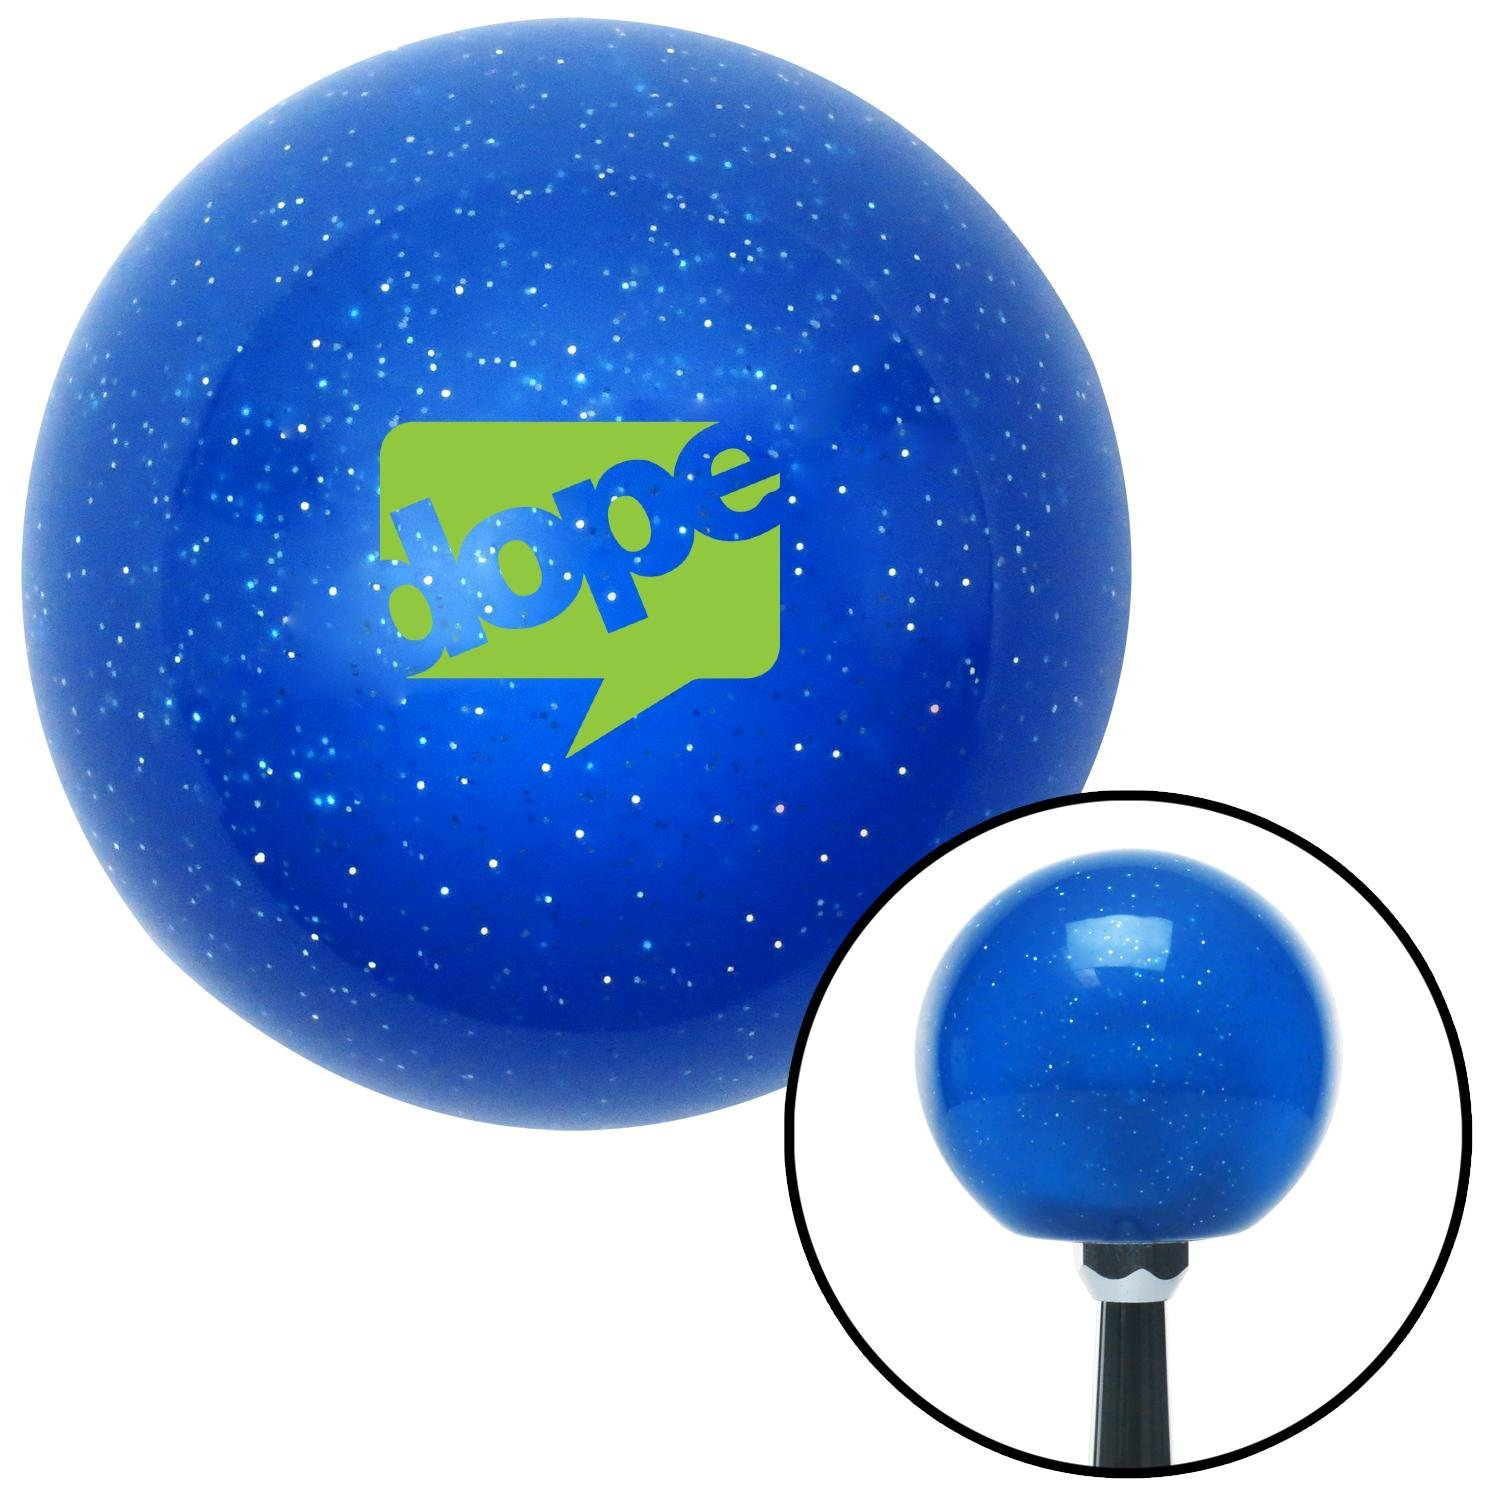 American Shifter 276929 Shift Knob Green Dope Bubble Blue Metal Flake with M16 x 1.5 Insert